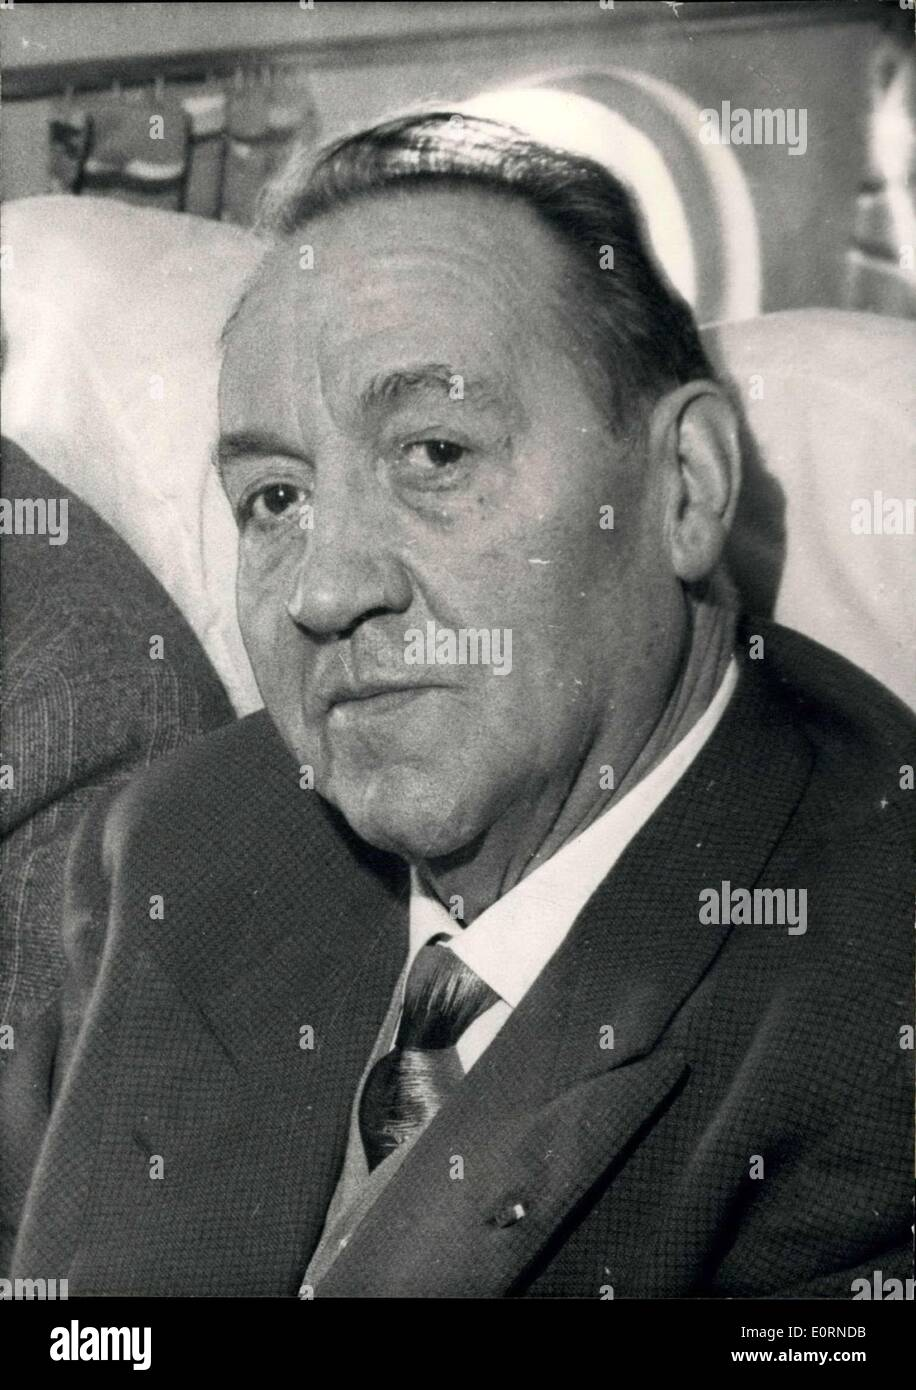 Jan. 30, 1960 - Famous French Flyers Dies After Long Illness - Pioneer of Night Flights Paris London. Paul Codos, the famous French Flyers, one of the pioneer of commercial aviation, died after a long illness in Paris this morning. He was 63 years old. In 1924 he was the first to undertake night flights between Paris and London. He made a non stop flight from Paris to New York with Rossi as a co pilot in 1933. OPS: One of the most recent pictures of Paul Codos. - Stock Image